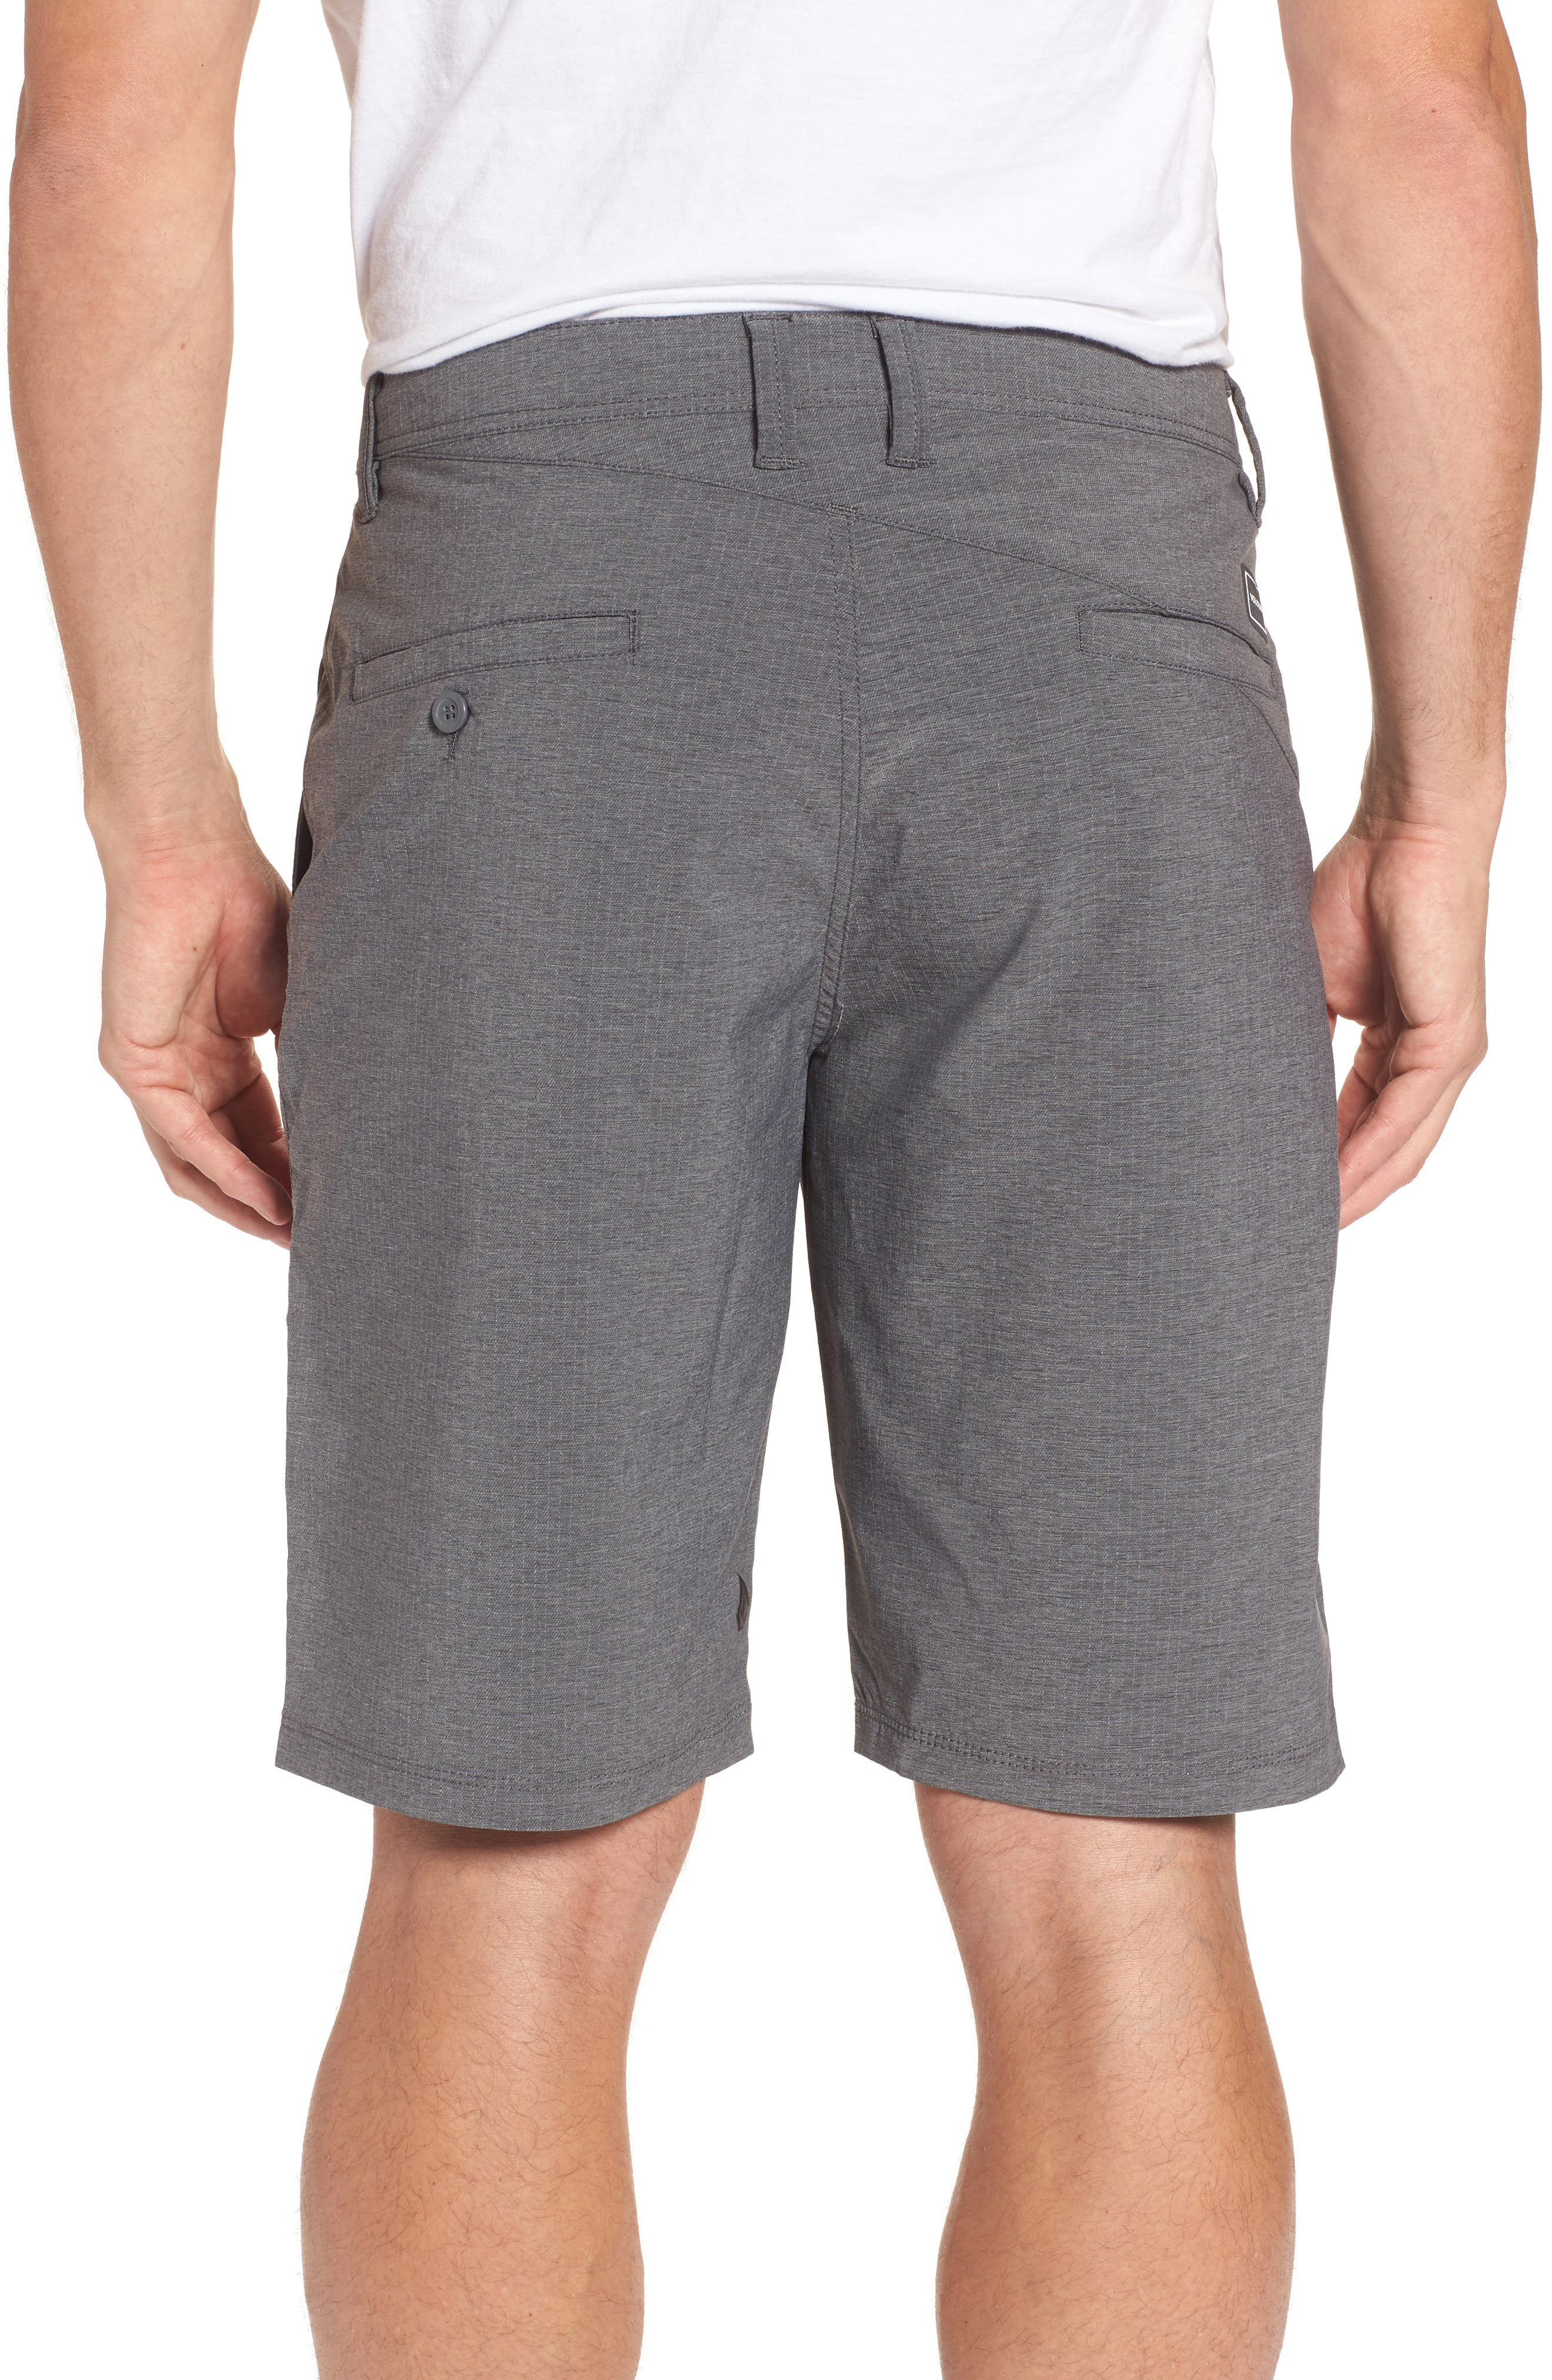 Surf 'N Turf Shorts,                             Alternate thumbnail 2, color,                             020